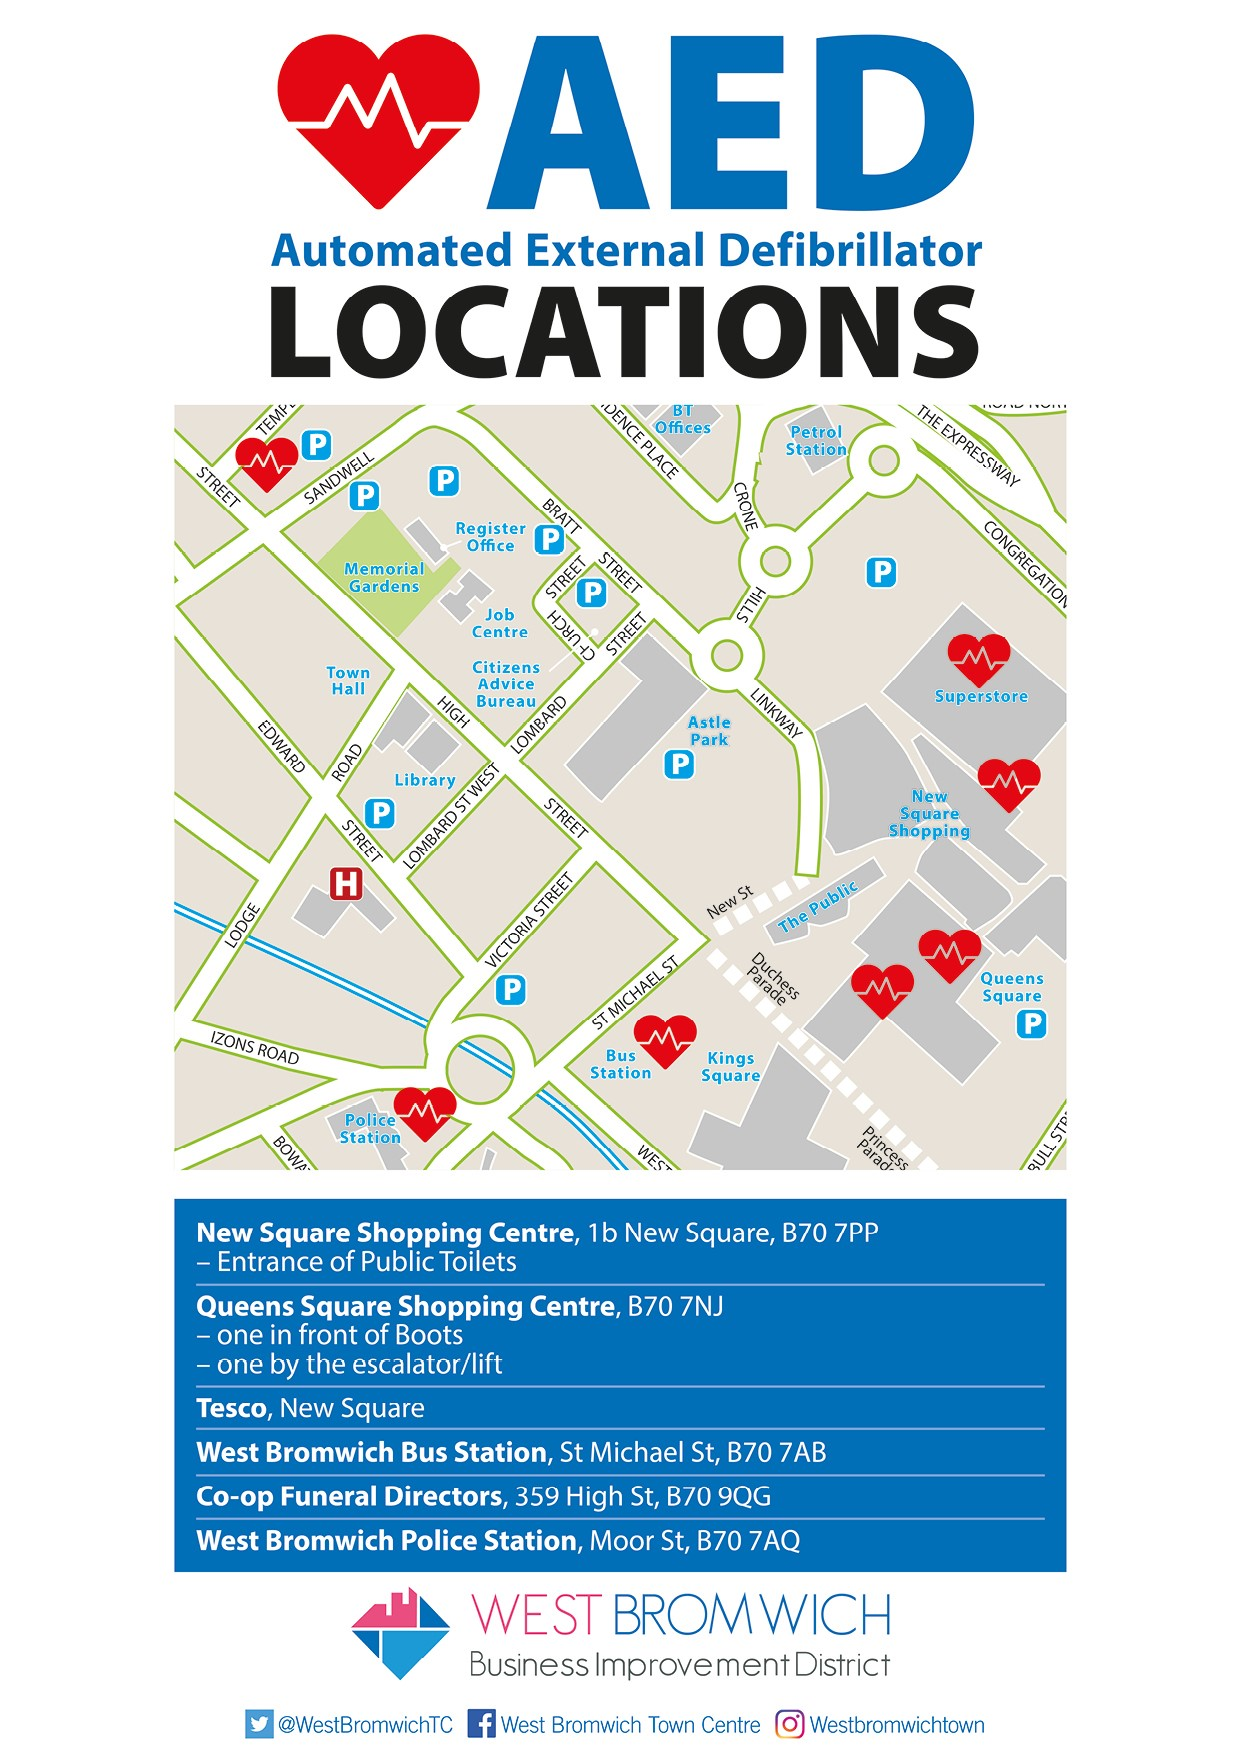 AED Locations in West Bromwich